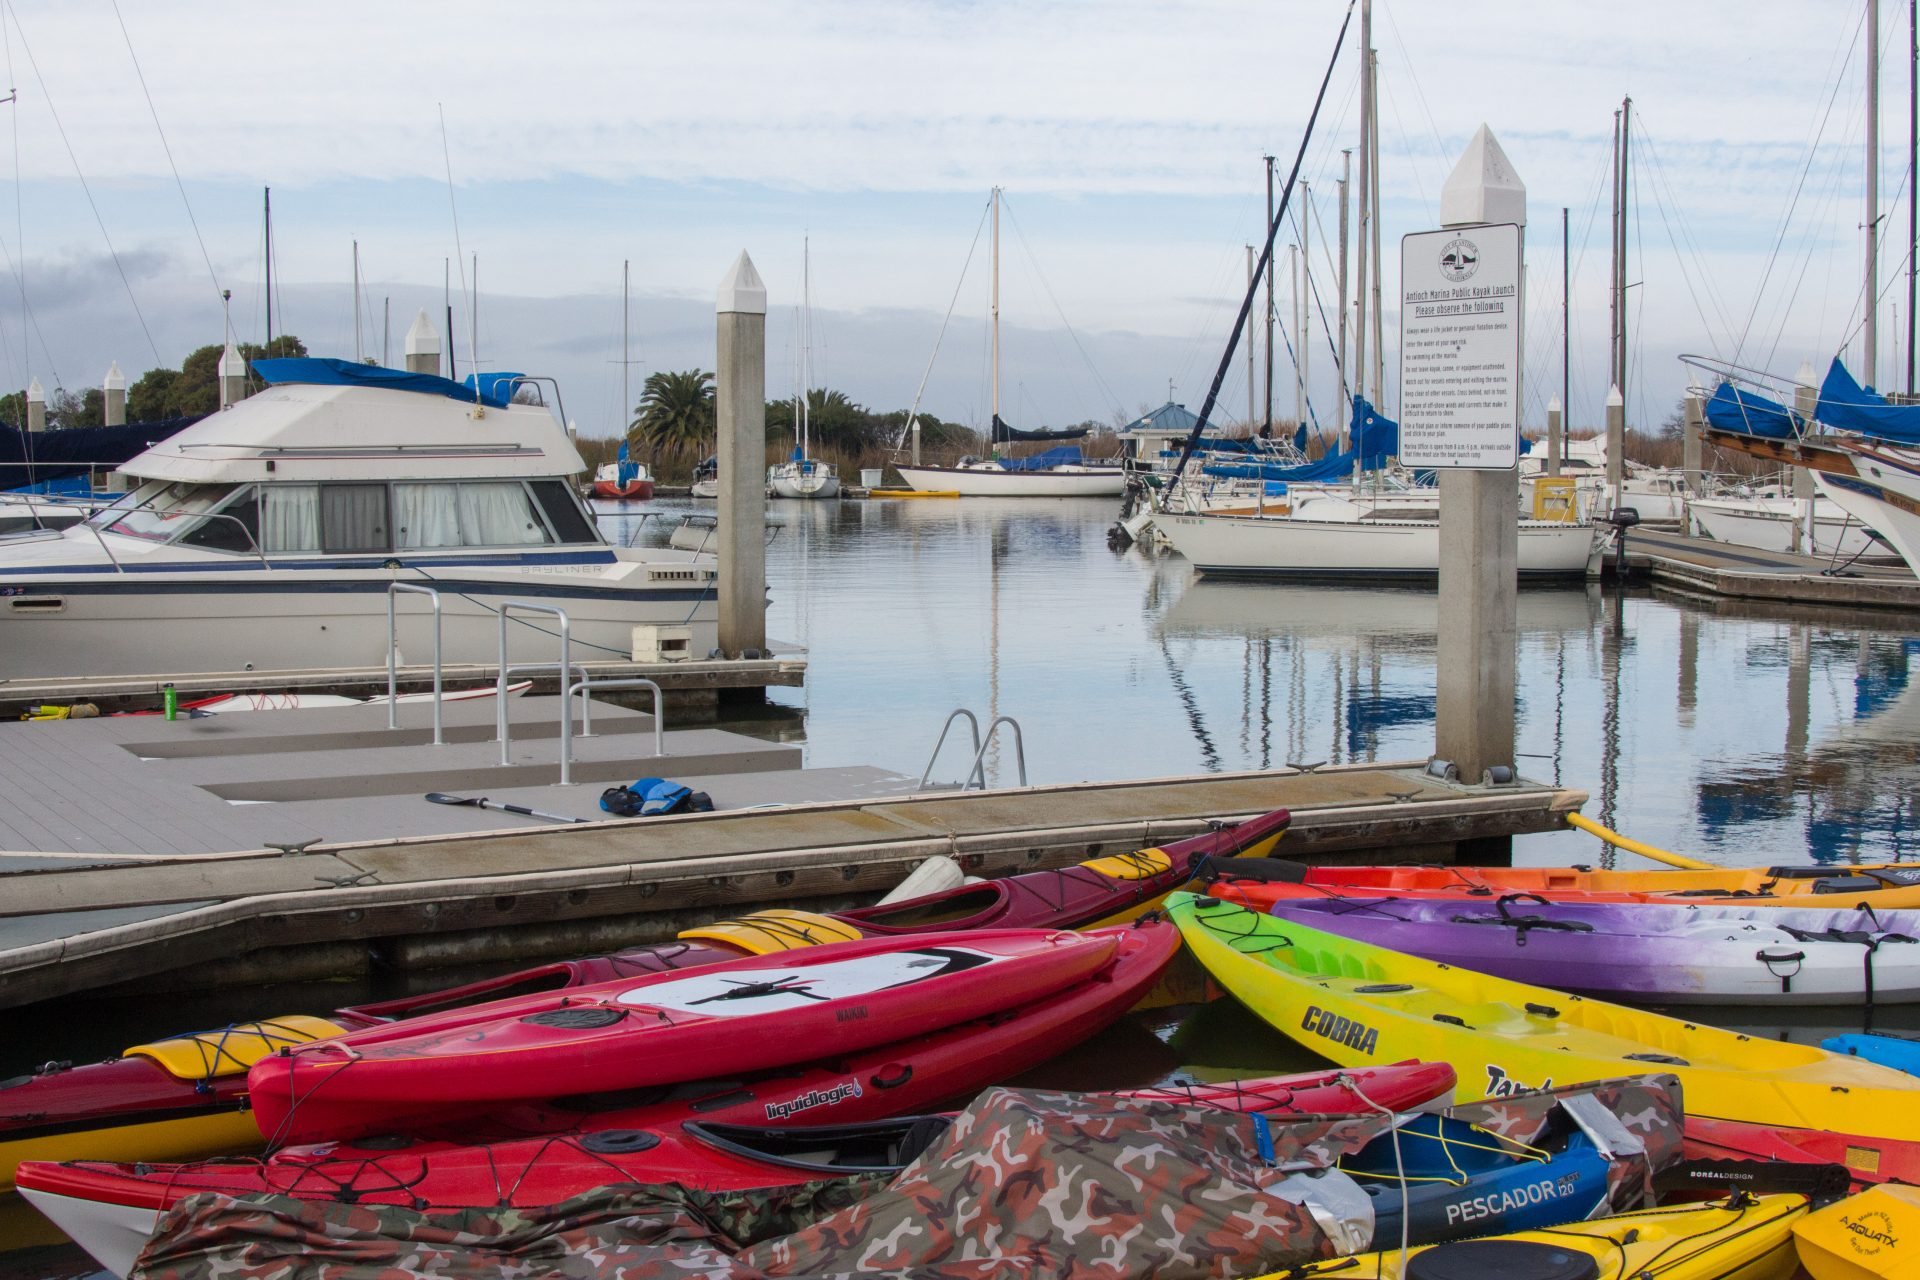 colorful kayaks in a jumble, boats docked beyond